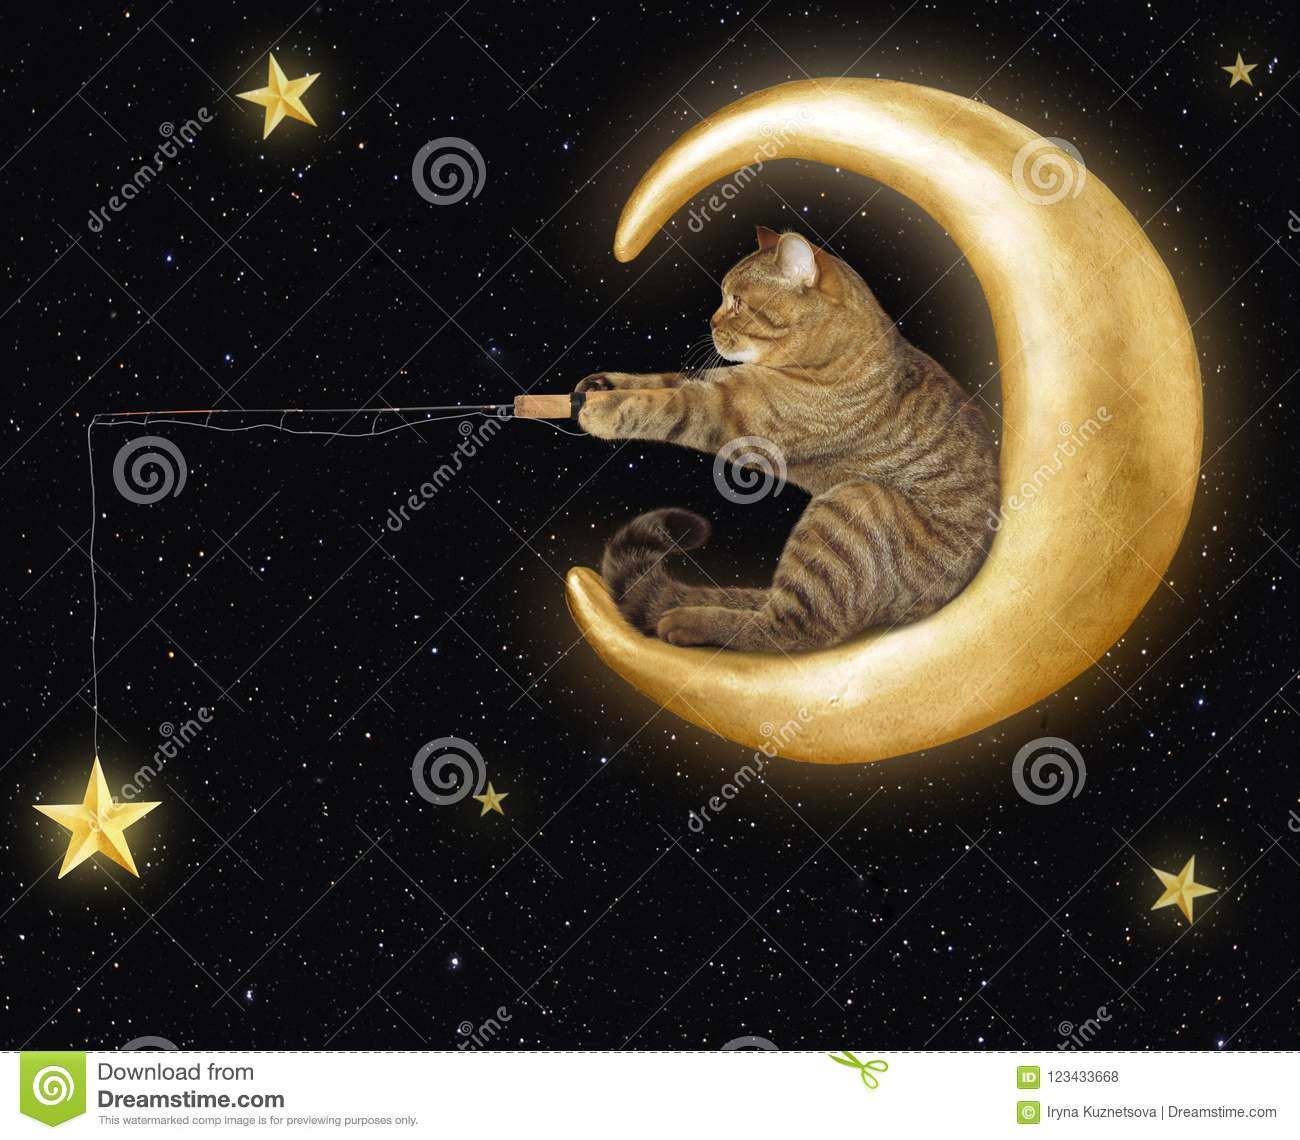 Cat on moon catches stars